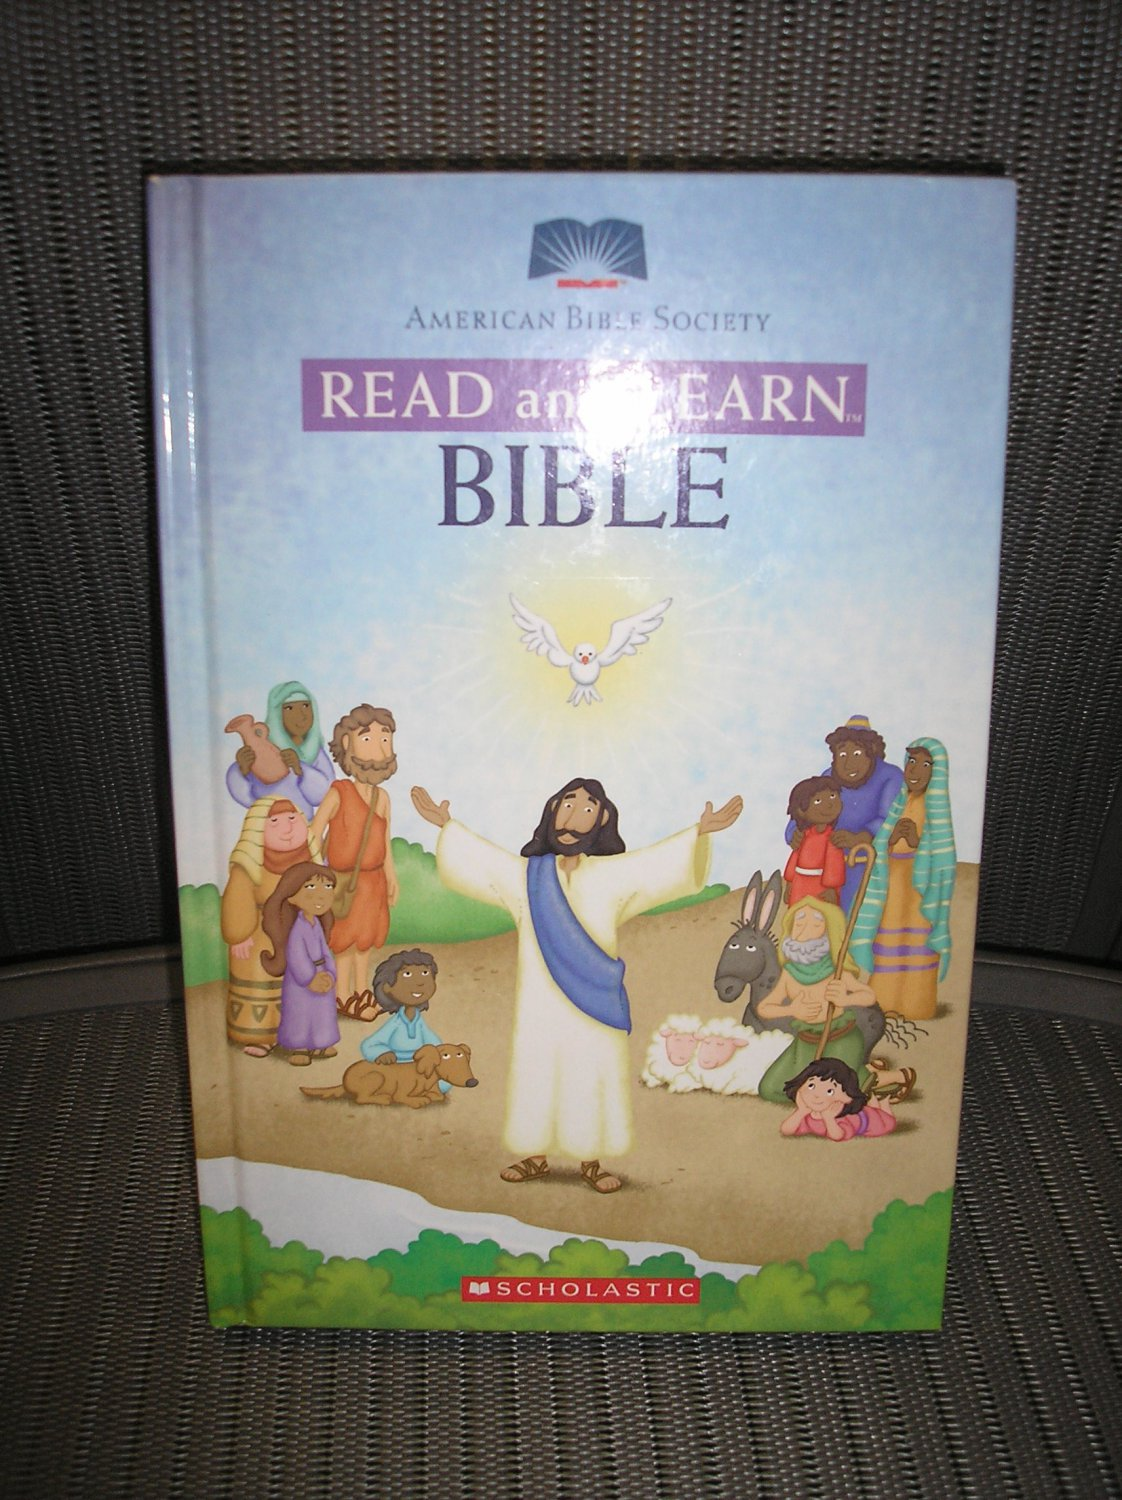 9780439651264 - Read And Learn Bible by American; American ...